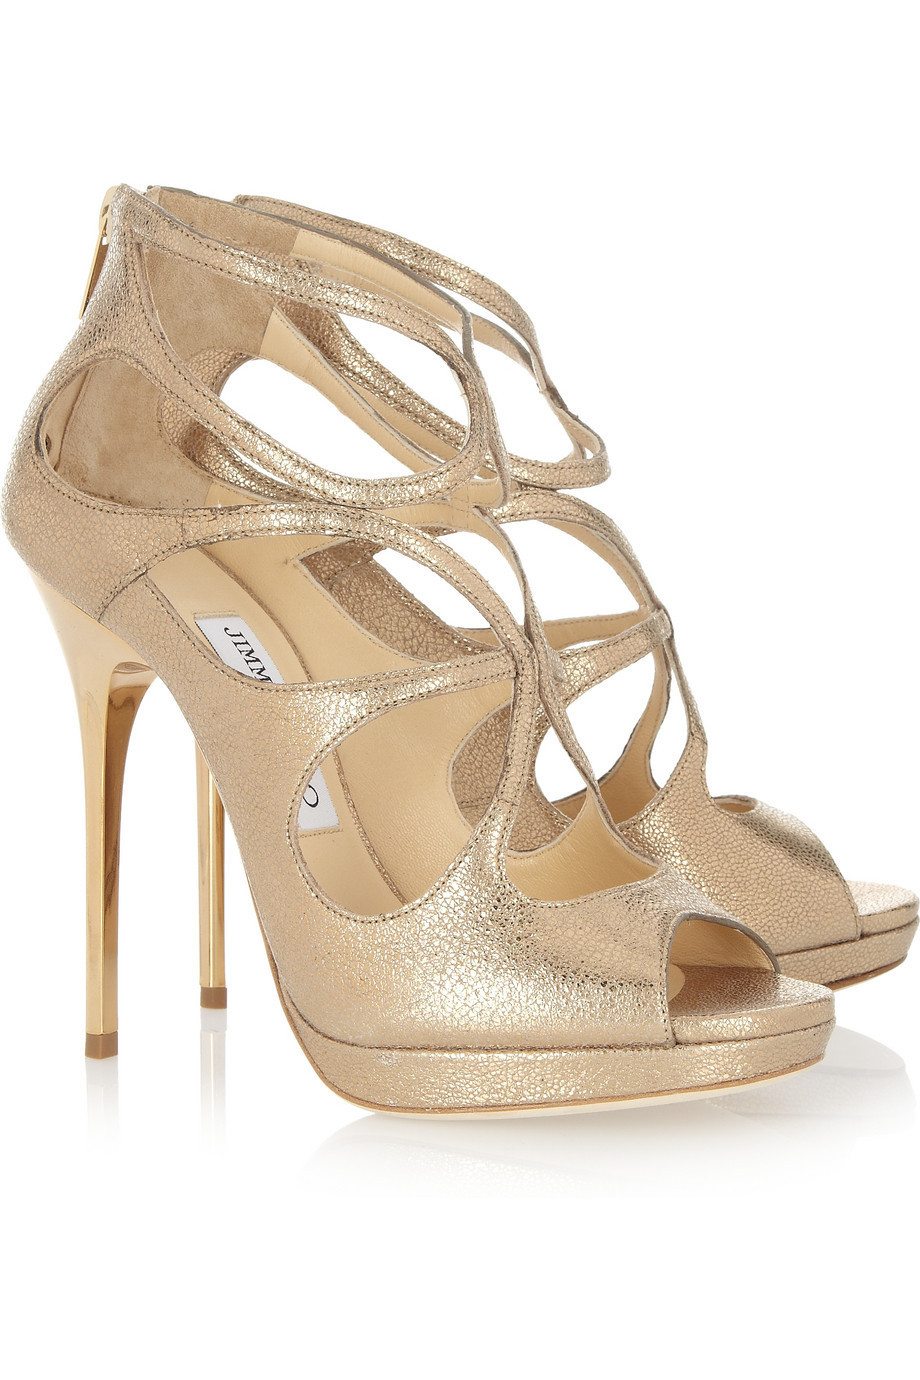 Italy Jimmy Choo Sandals - Product 198399